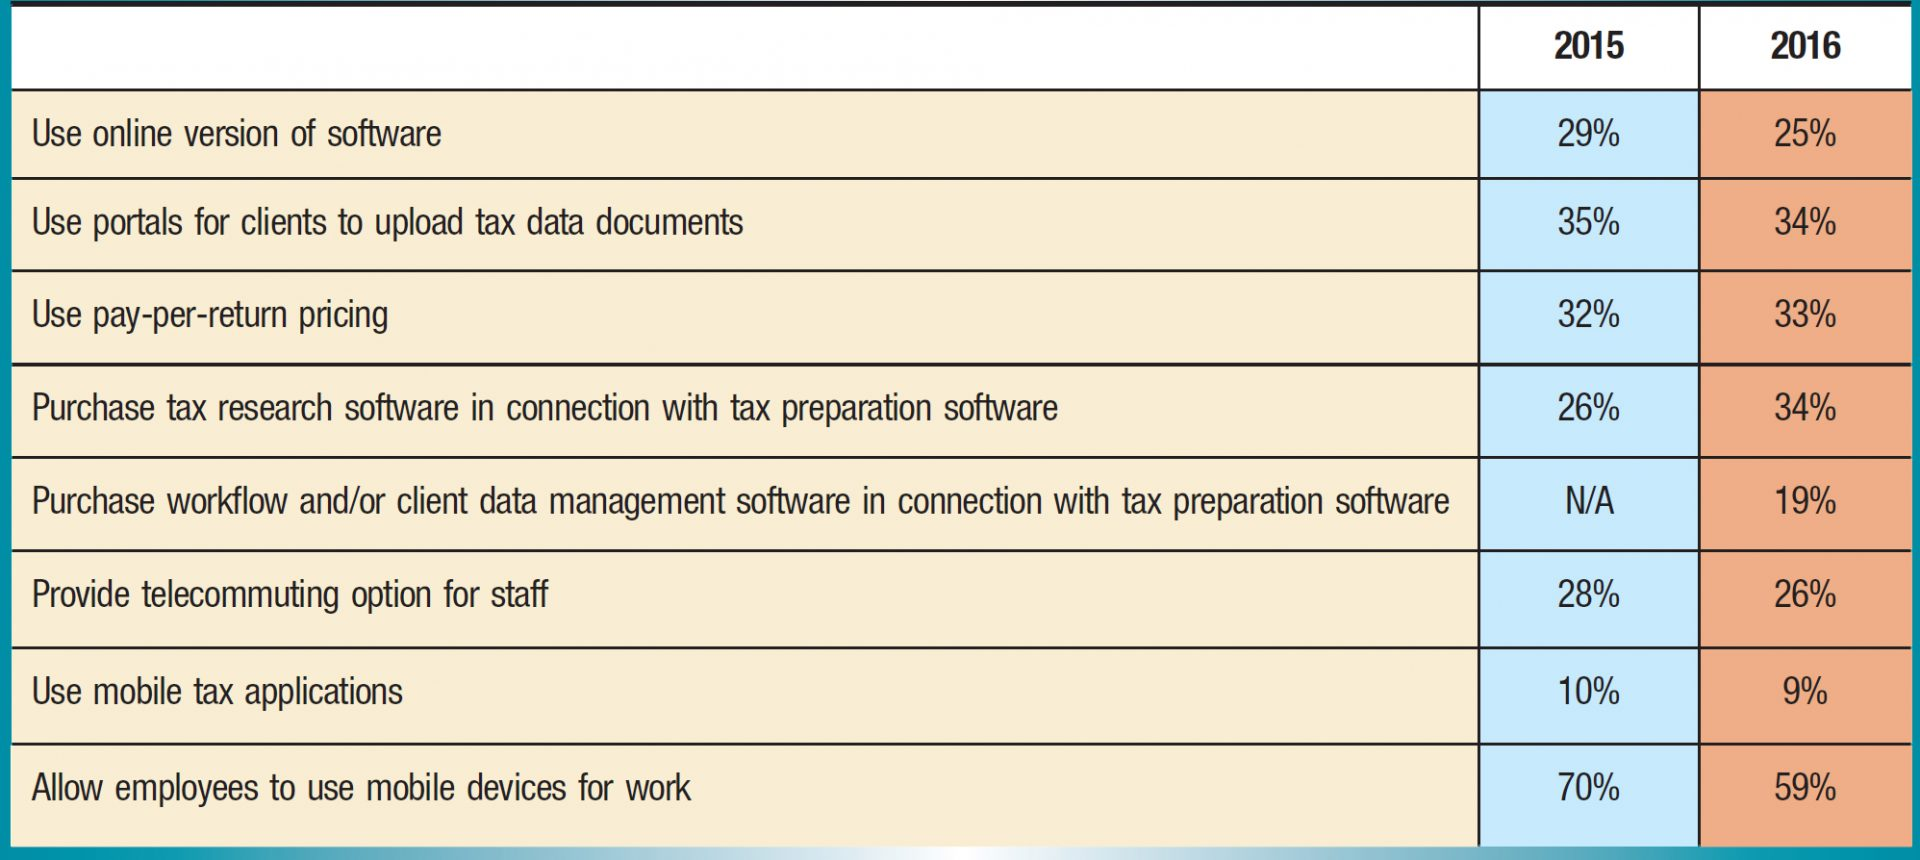 2015; 2016 Use online version of software; 29%; 25% Use portals for clients to upload tax data documents; 35%; 34% Use pay-per-return pricing; 32%; 33% Purchase tax research software in connection with tax preparation software; 26%; 34% Purchase workflow and/or client data management software in connection with tax preparation software; N/A; 19% Provide telecommuting option for staff; 28%; 26% Use mobile tax applications; 10%; 9% Allow employees to use mobile devices for work; 70%; 59%